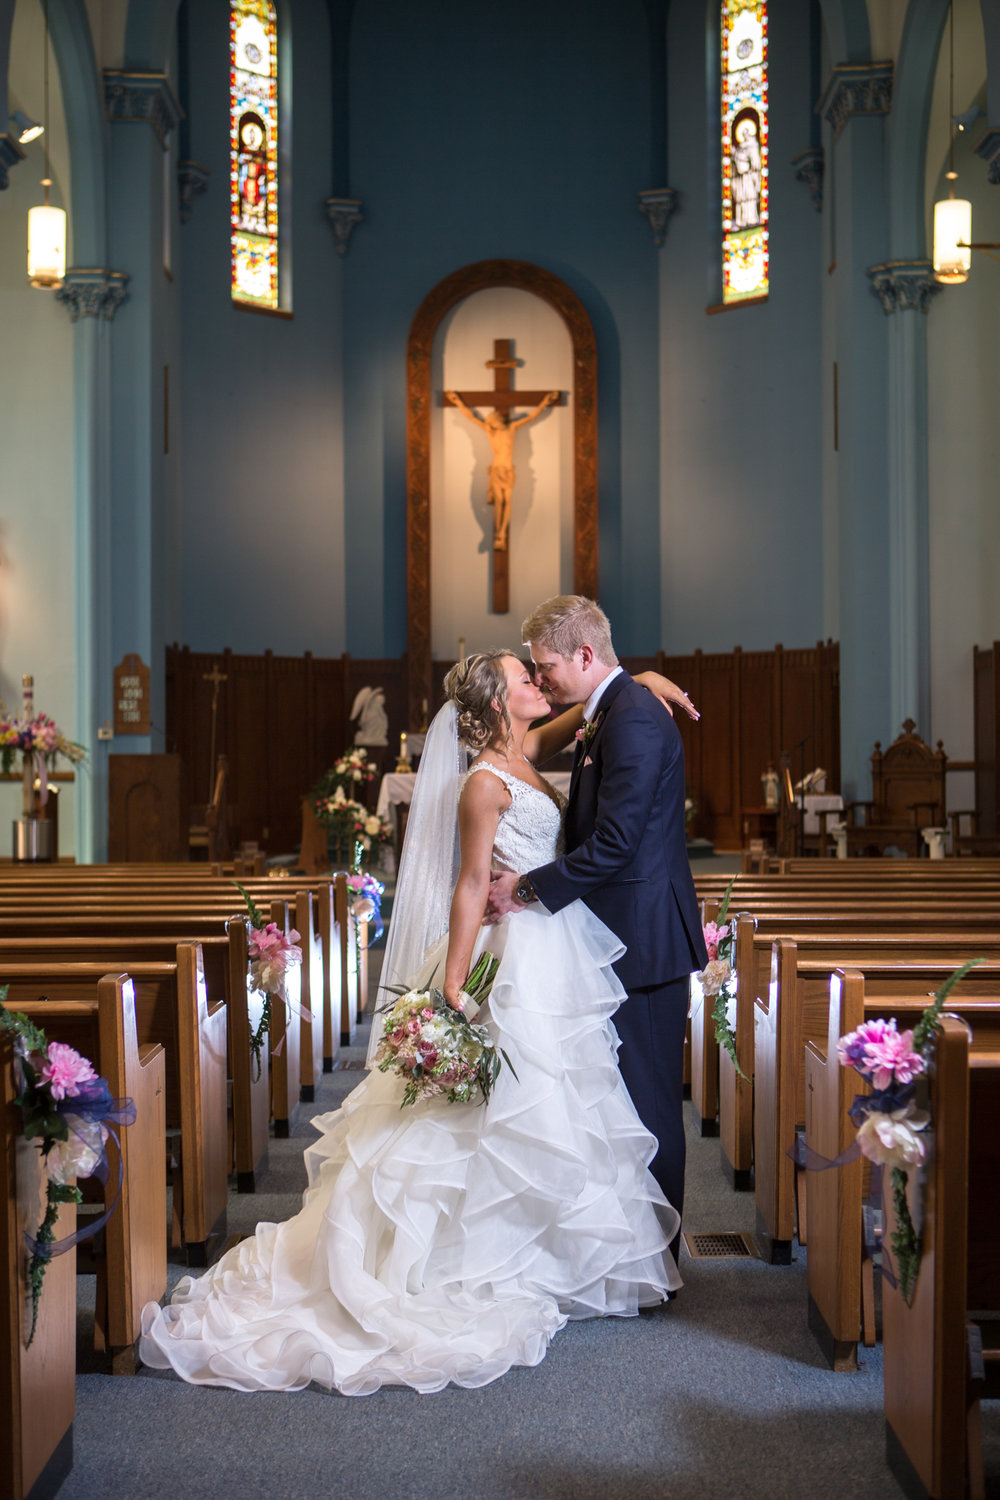 St. Patrick Catholic Church Minonk Packard Plaza Peoria Bloomington Normal Illinois Wedding Photographer Photographers Peoria Riverfront-27.jpg